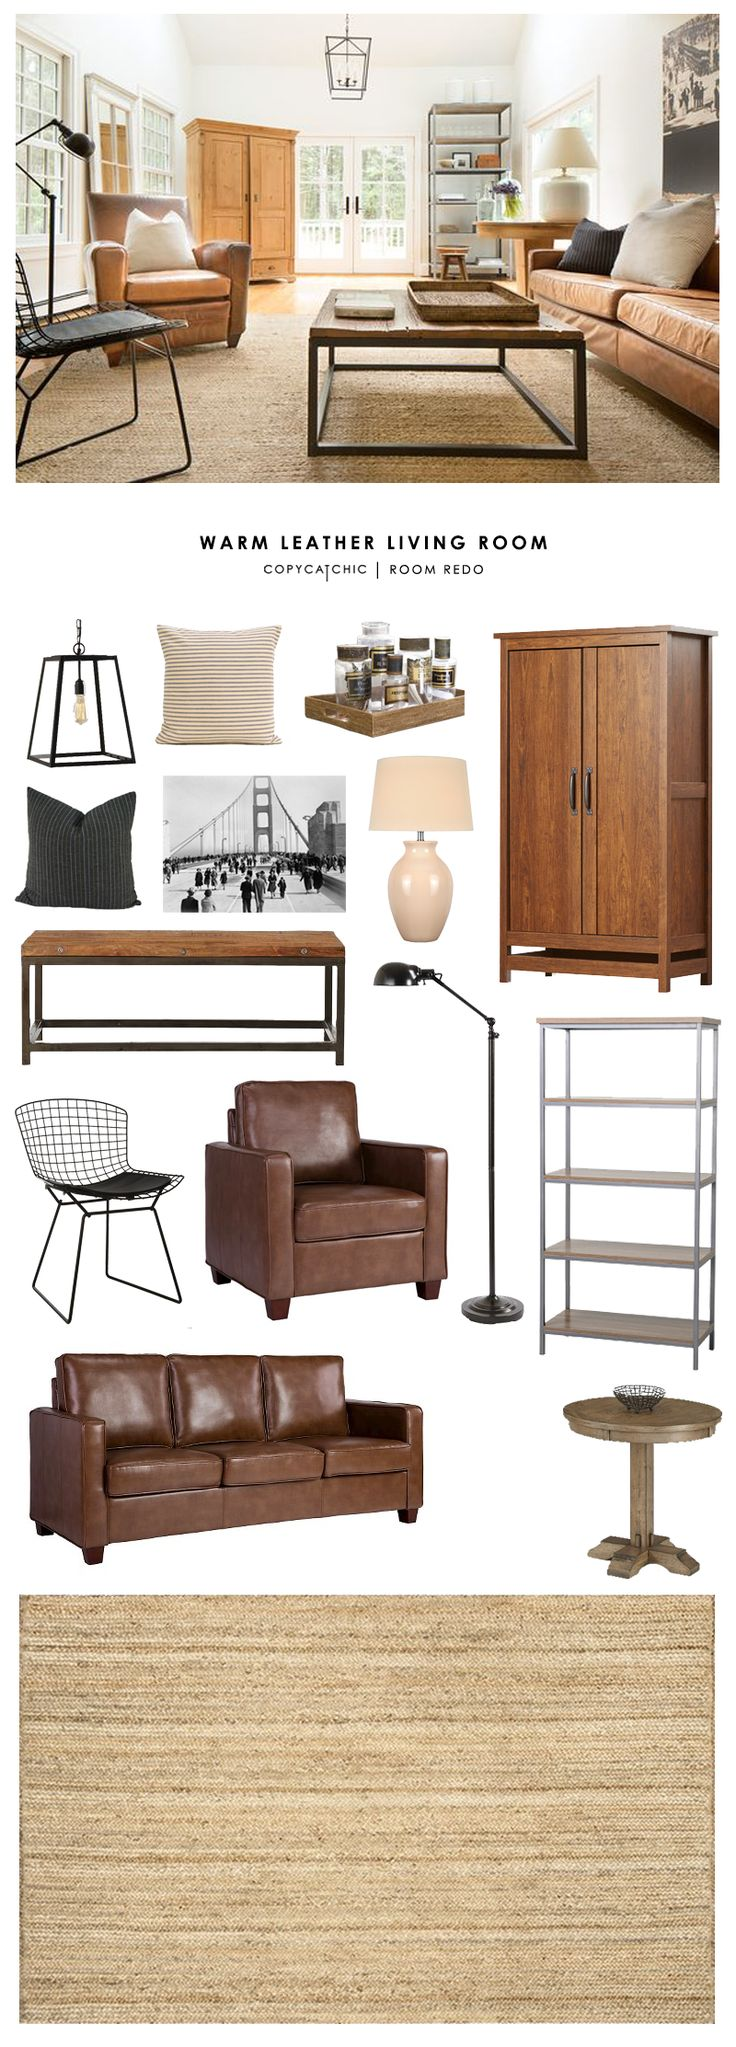 Copy Cat Chic Room Redo | Warm Leather Living Room